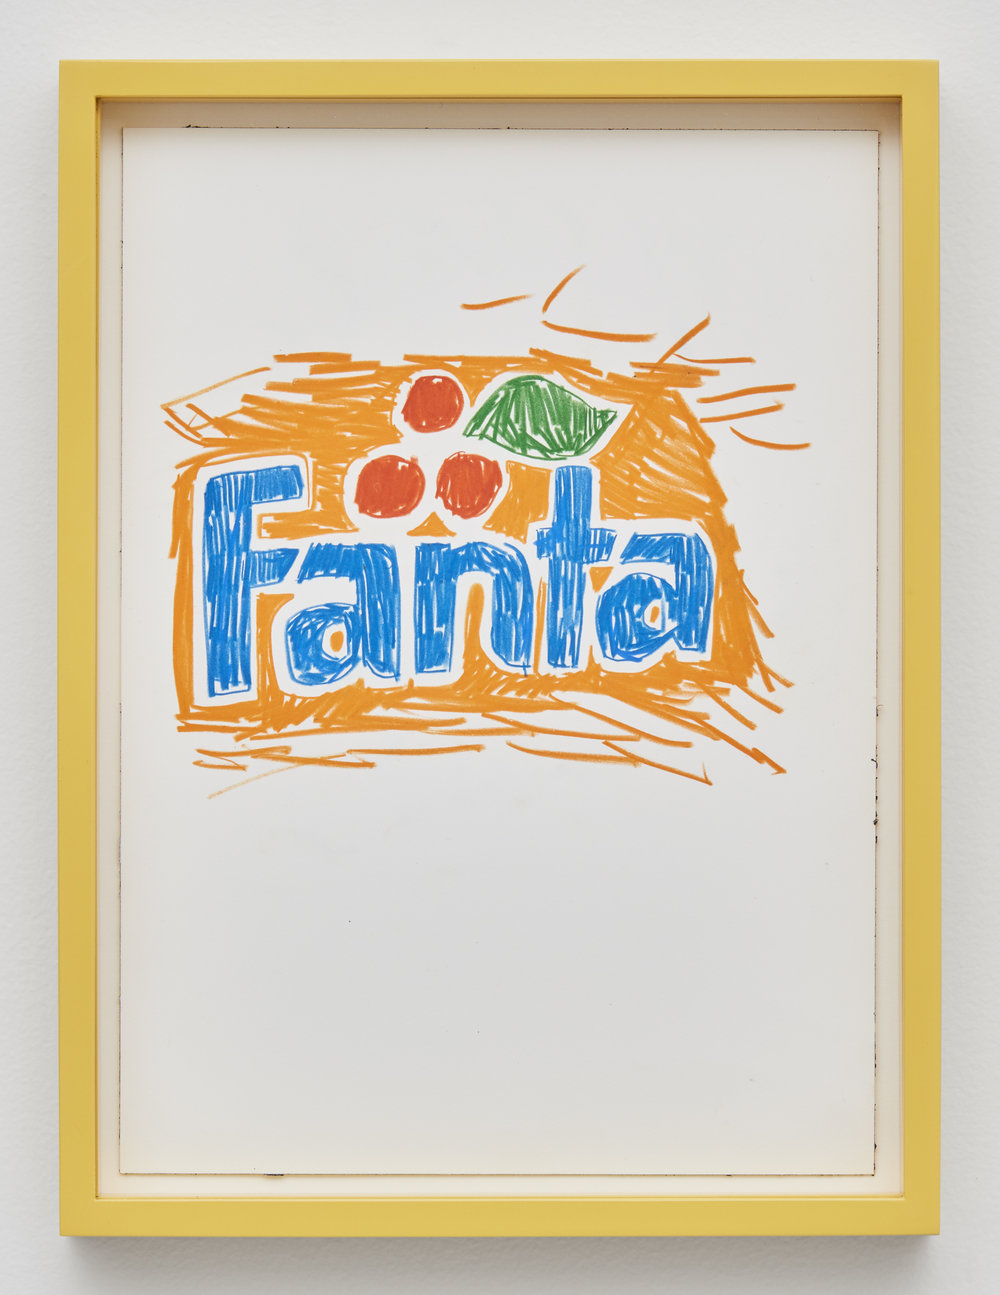 Fanta, 2017 colored pencil and ink on paper 40 x 30 cm - 15 3/4 x 11 13/16 inches (framed)